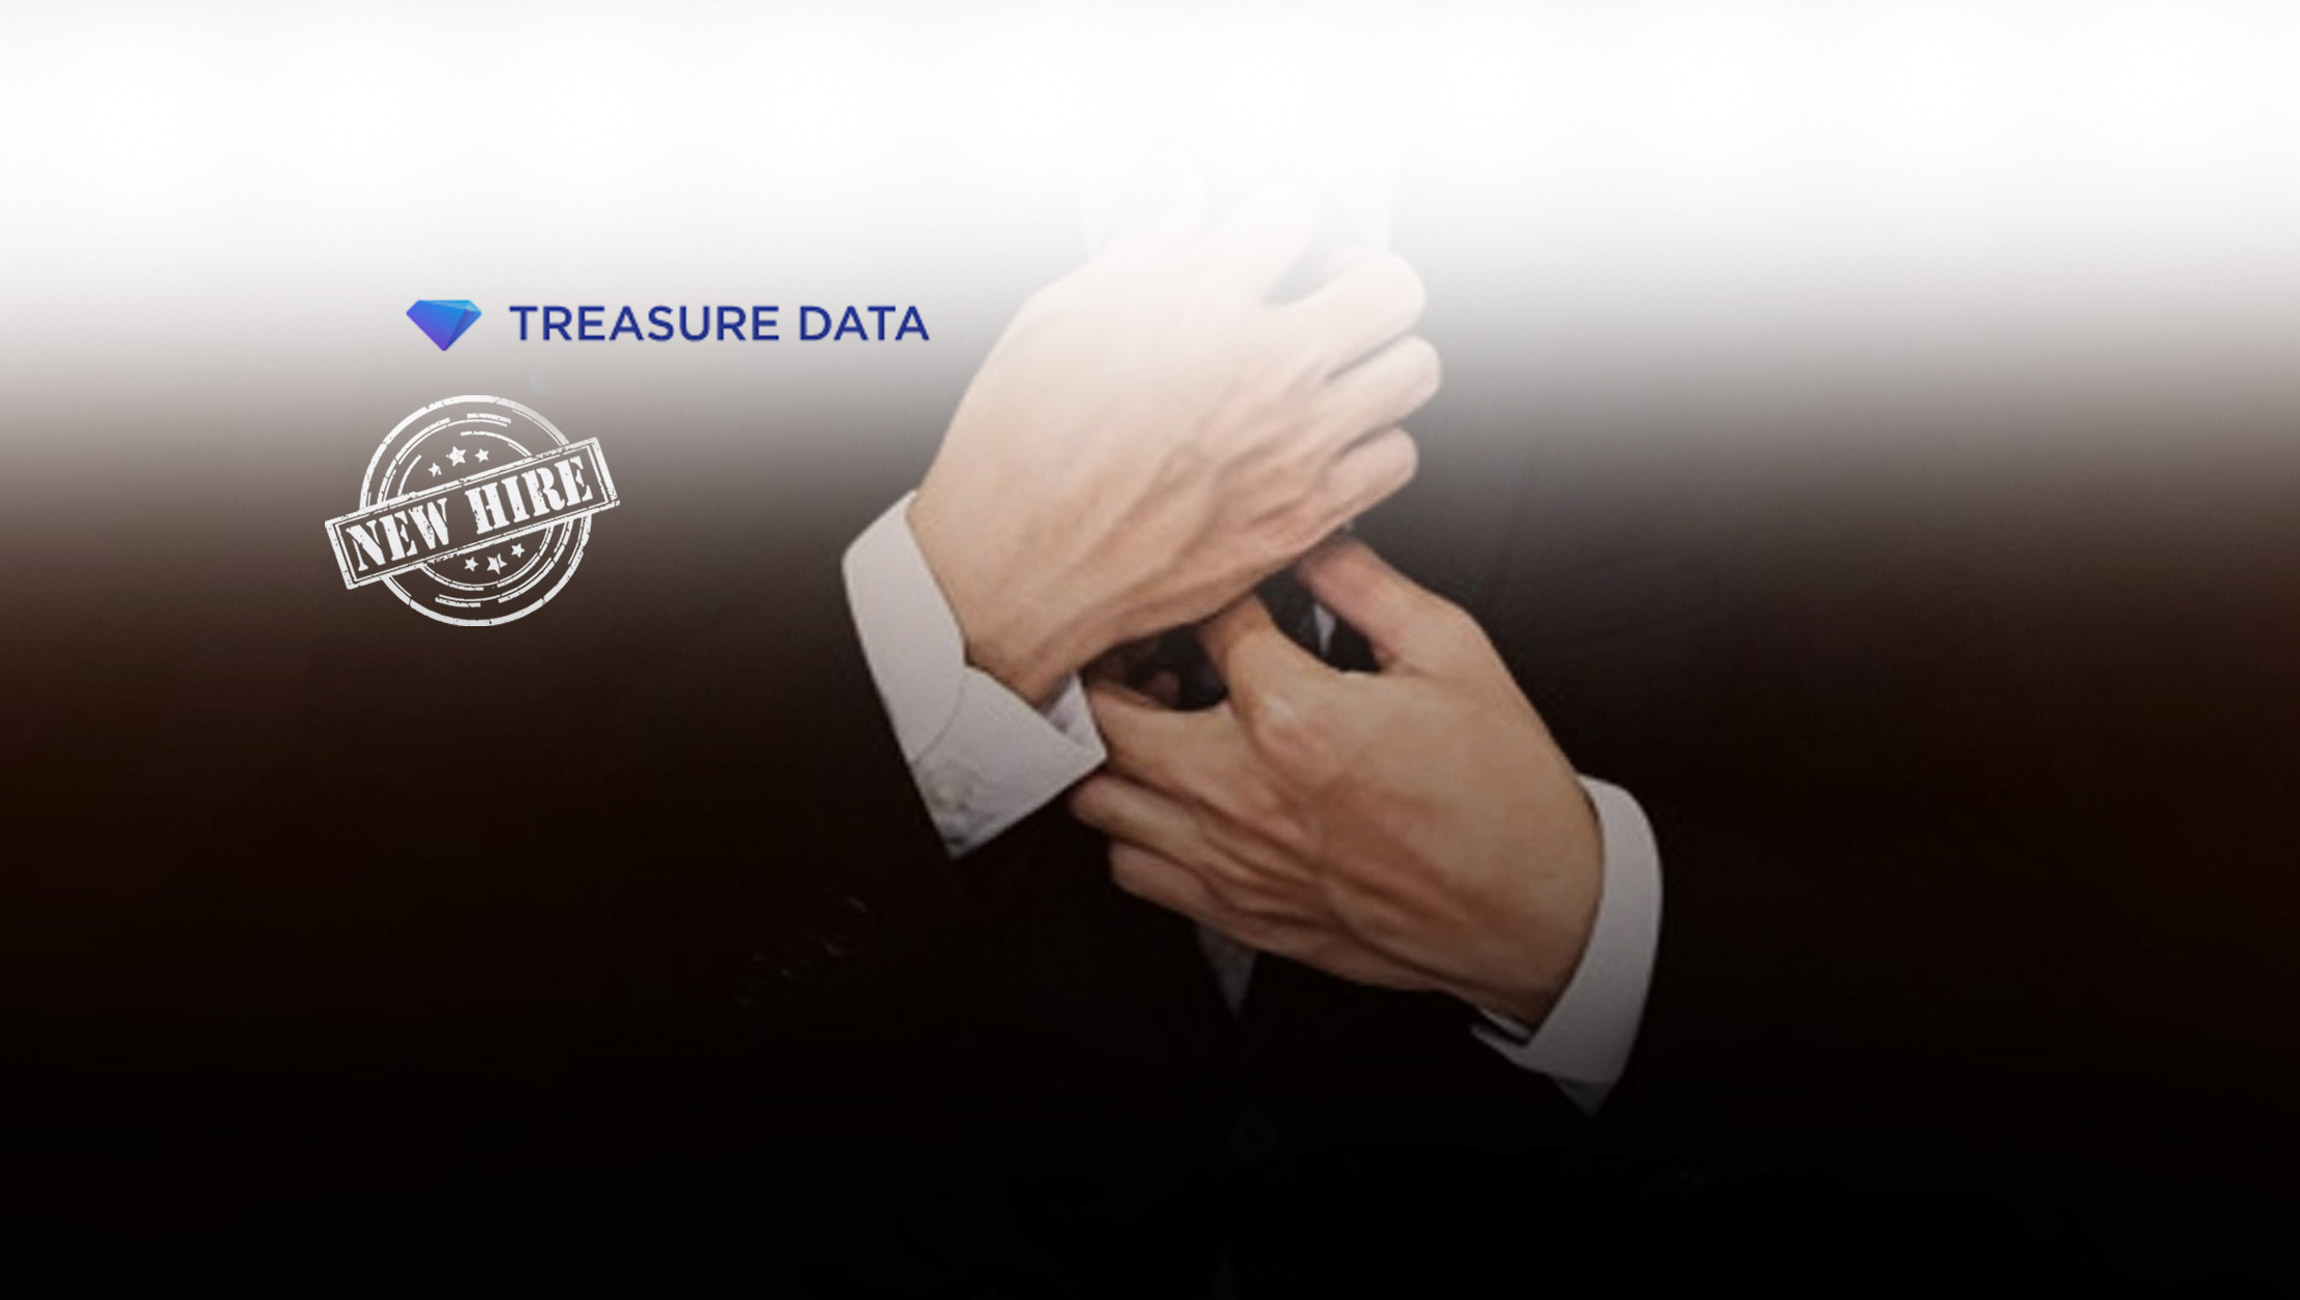 Treasure Data Appoints New Chief Executive Officer to Build on 3x Growth